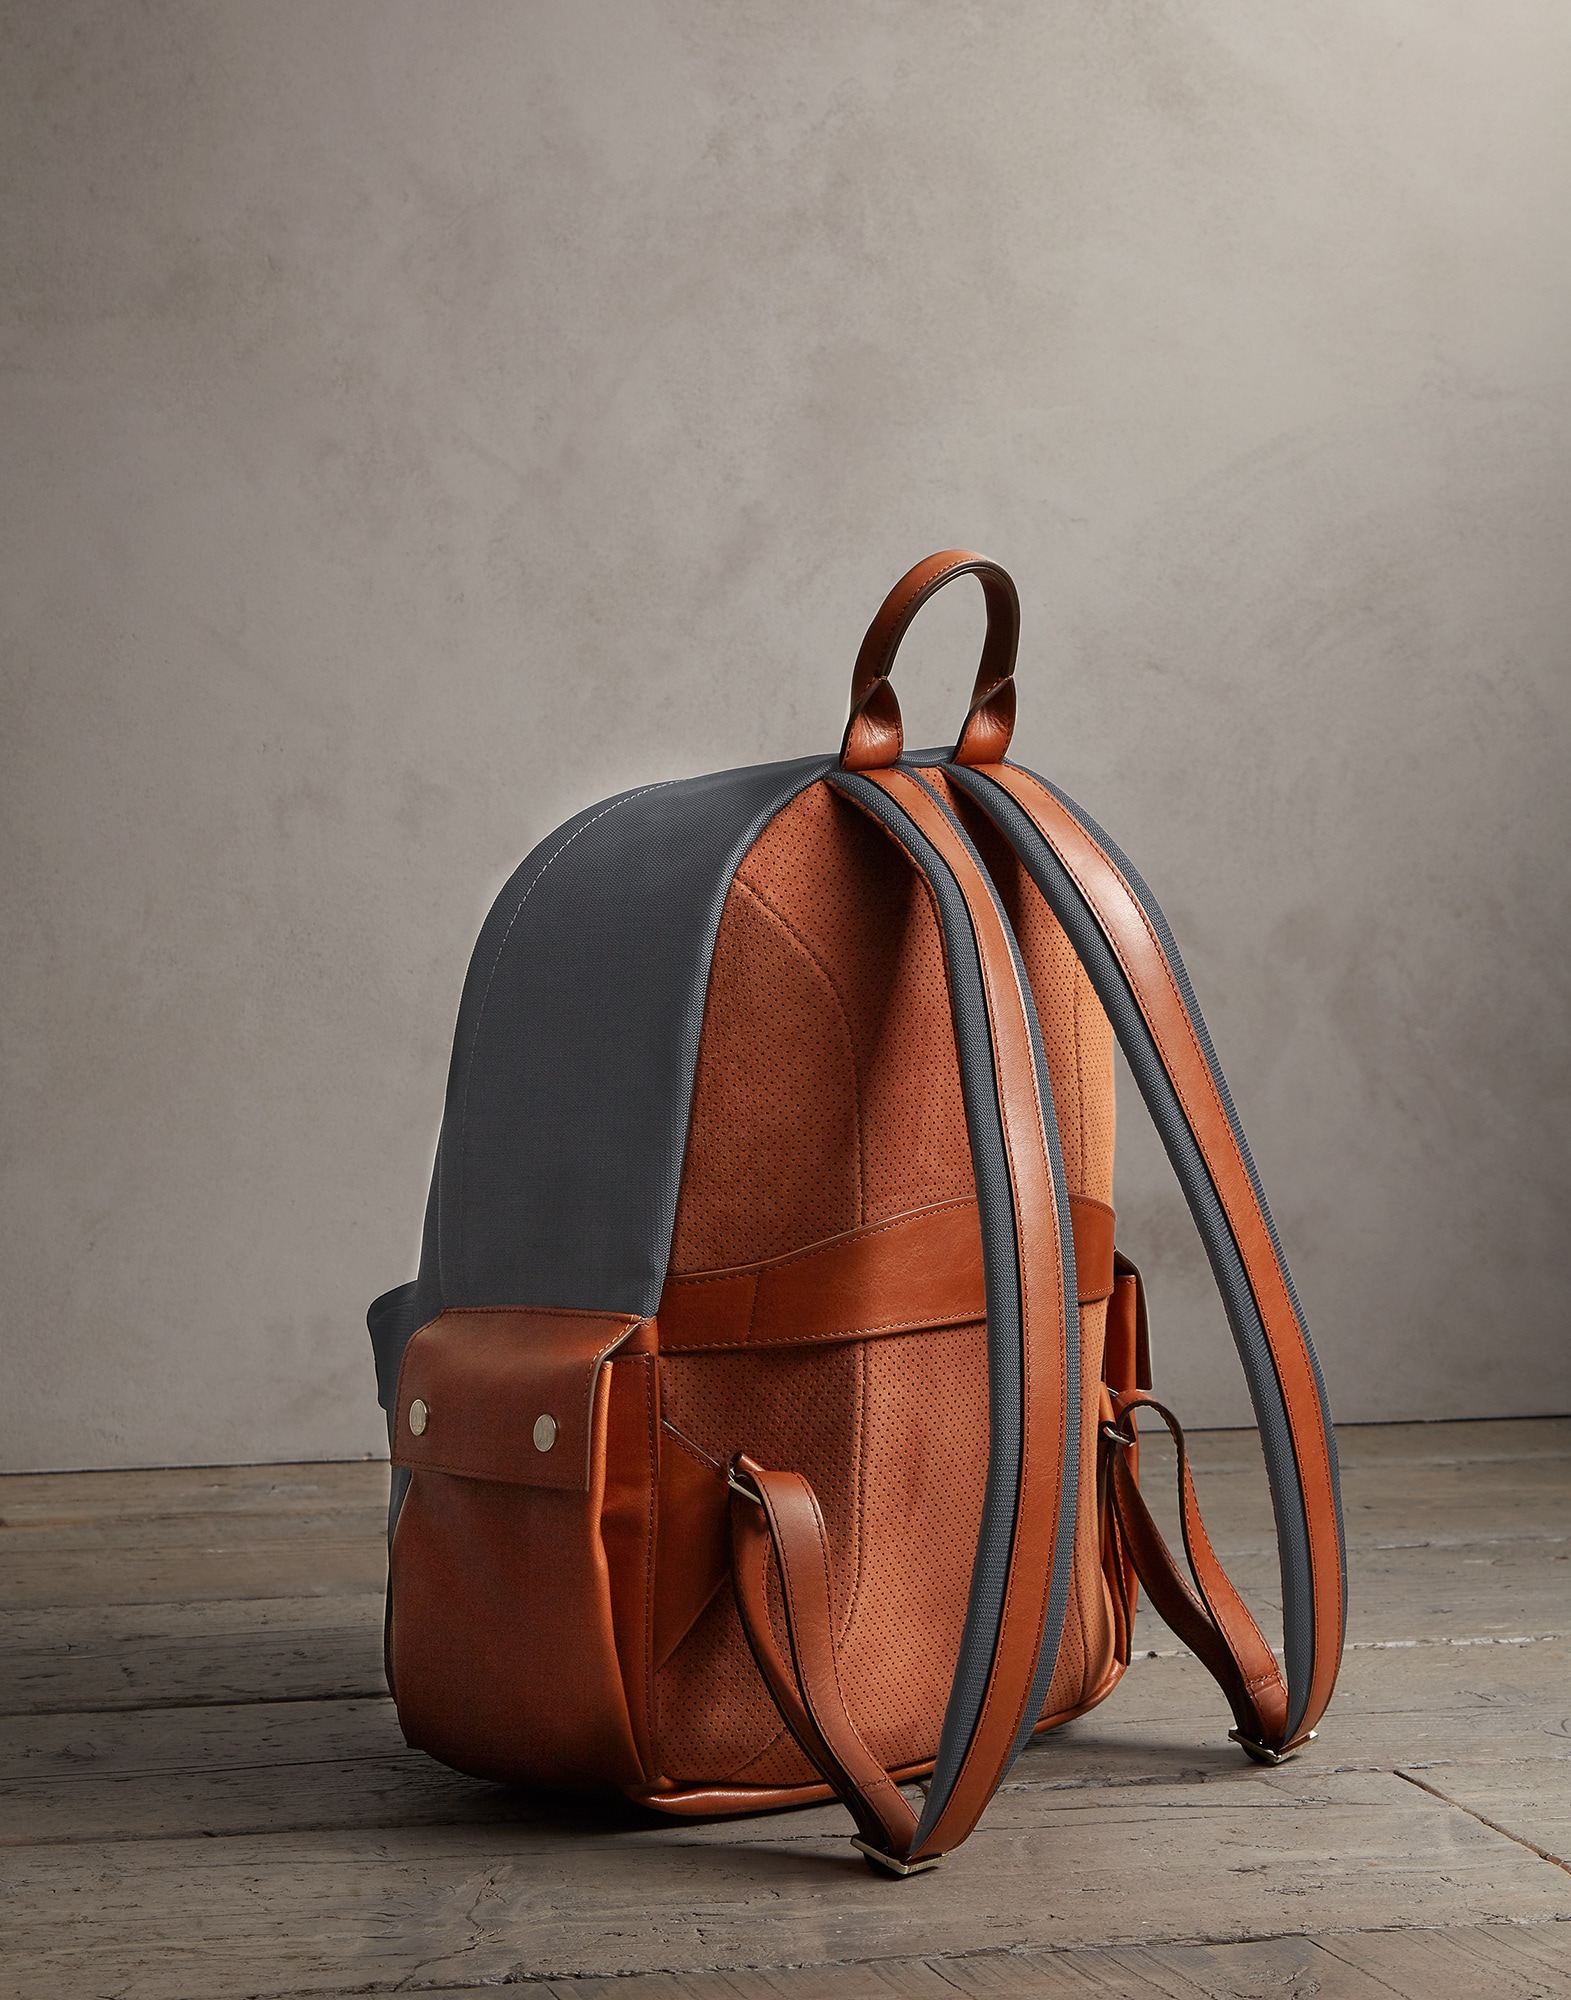 Backpack Lead Man 2 - Brunello Cucinelli